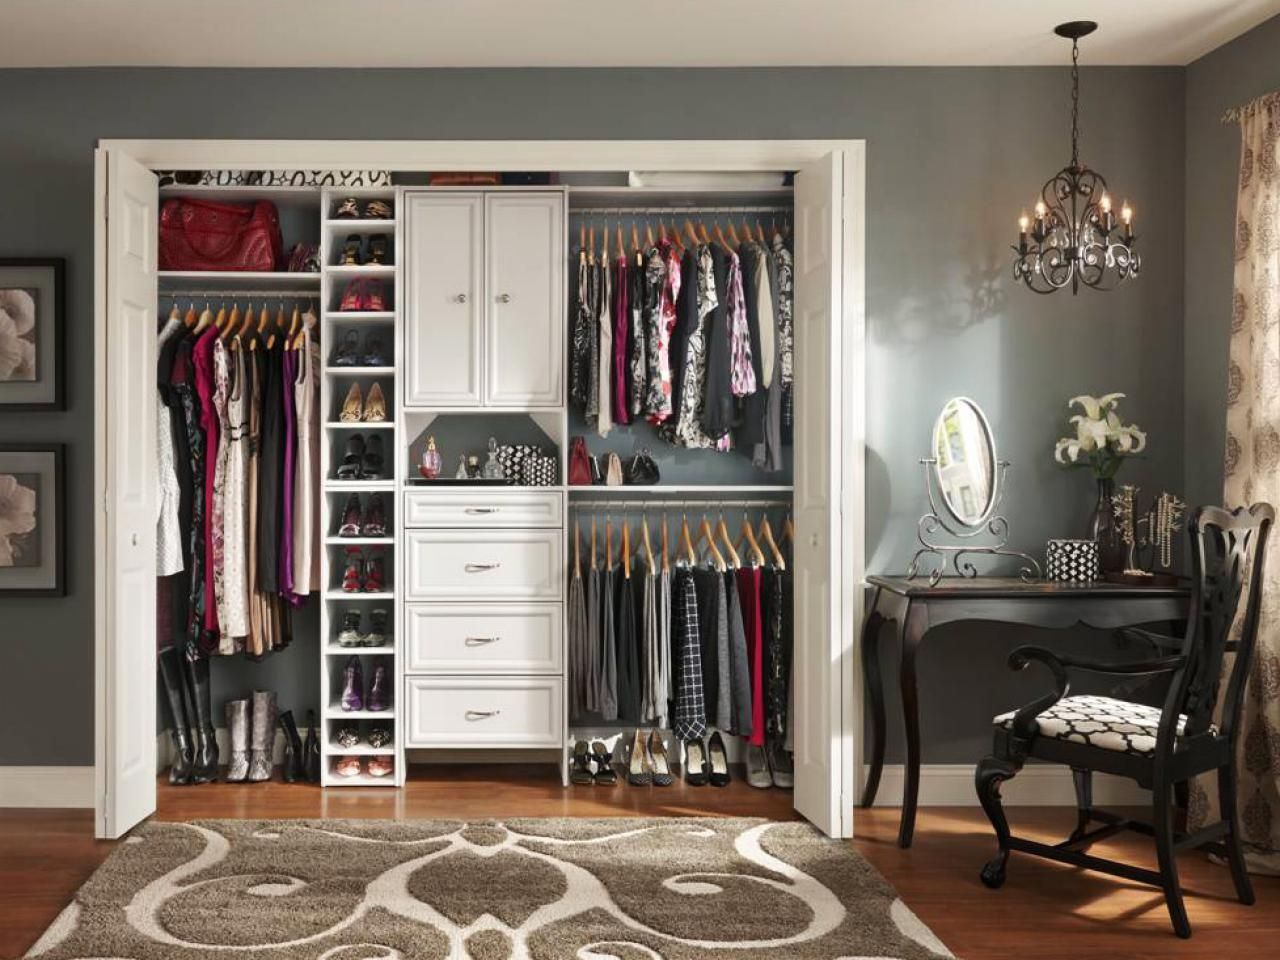 California Closets Nyc | California Closets New York | California Closet Cost